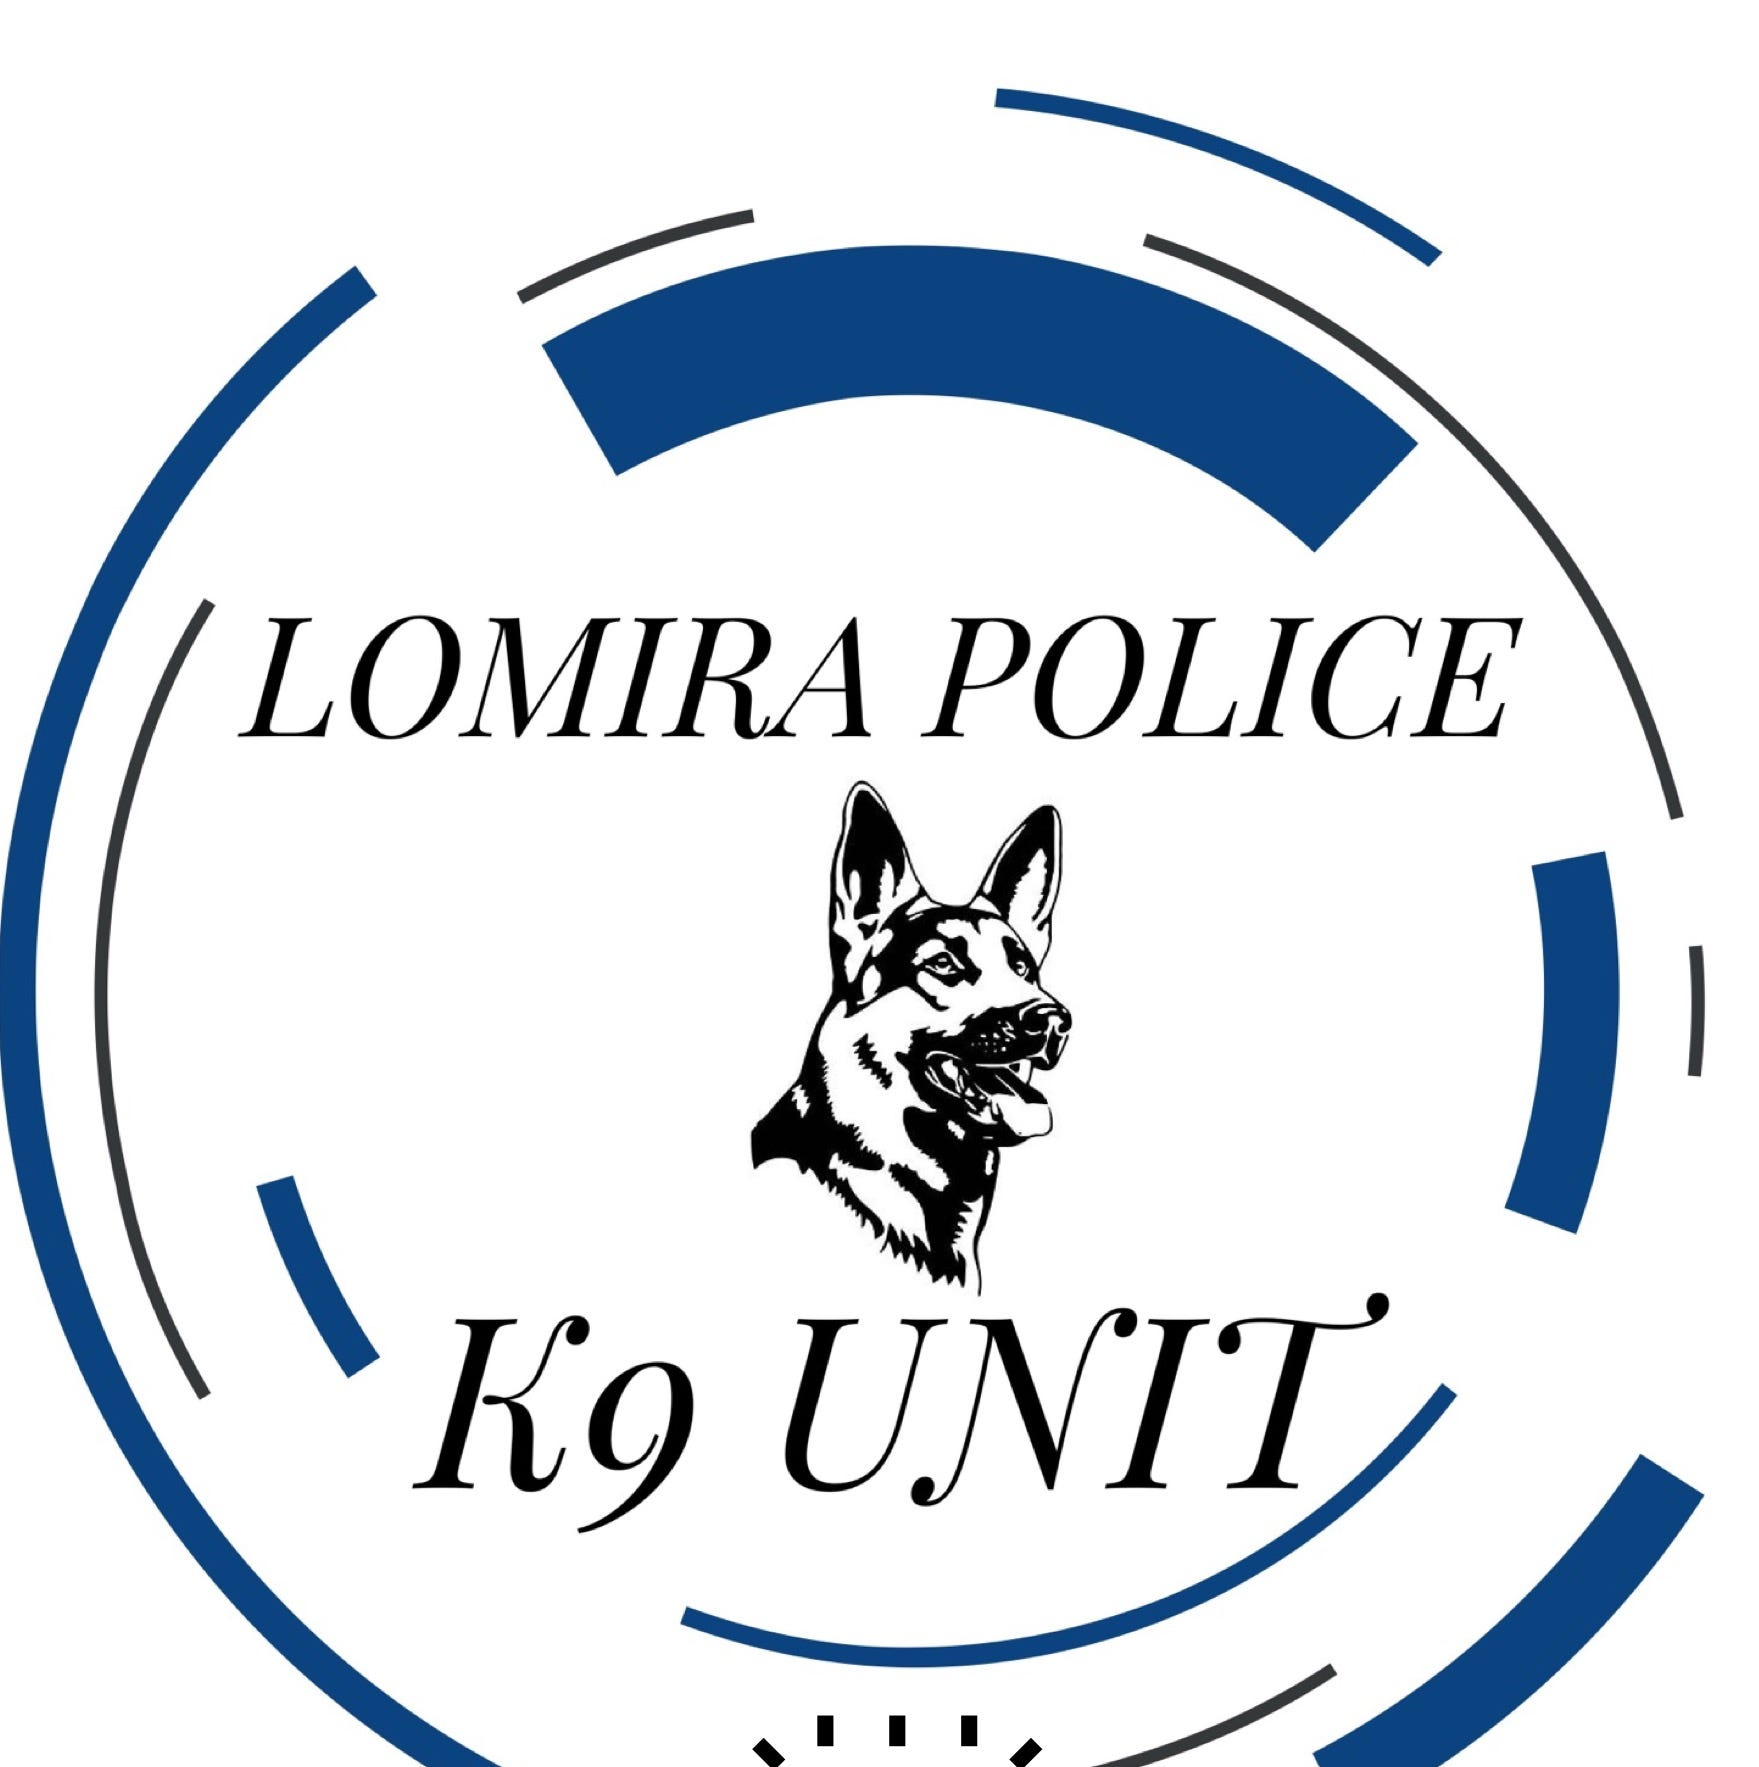 'Putting a collar on crime': Lomira police fund raise for new police dog